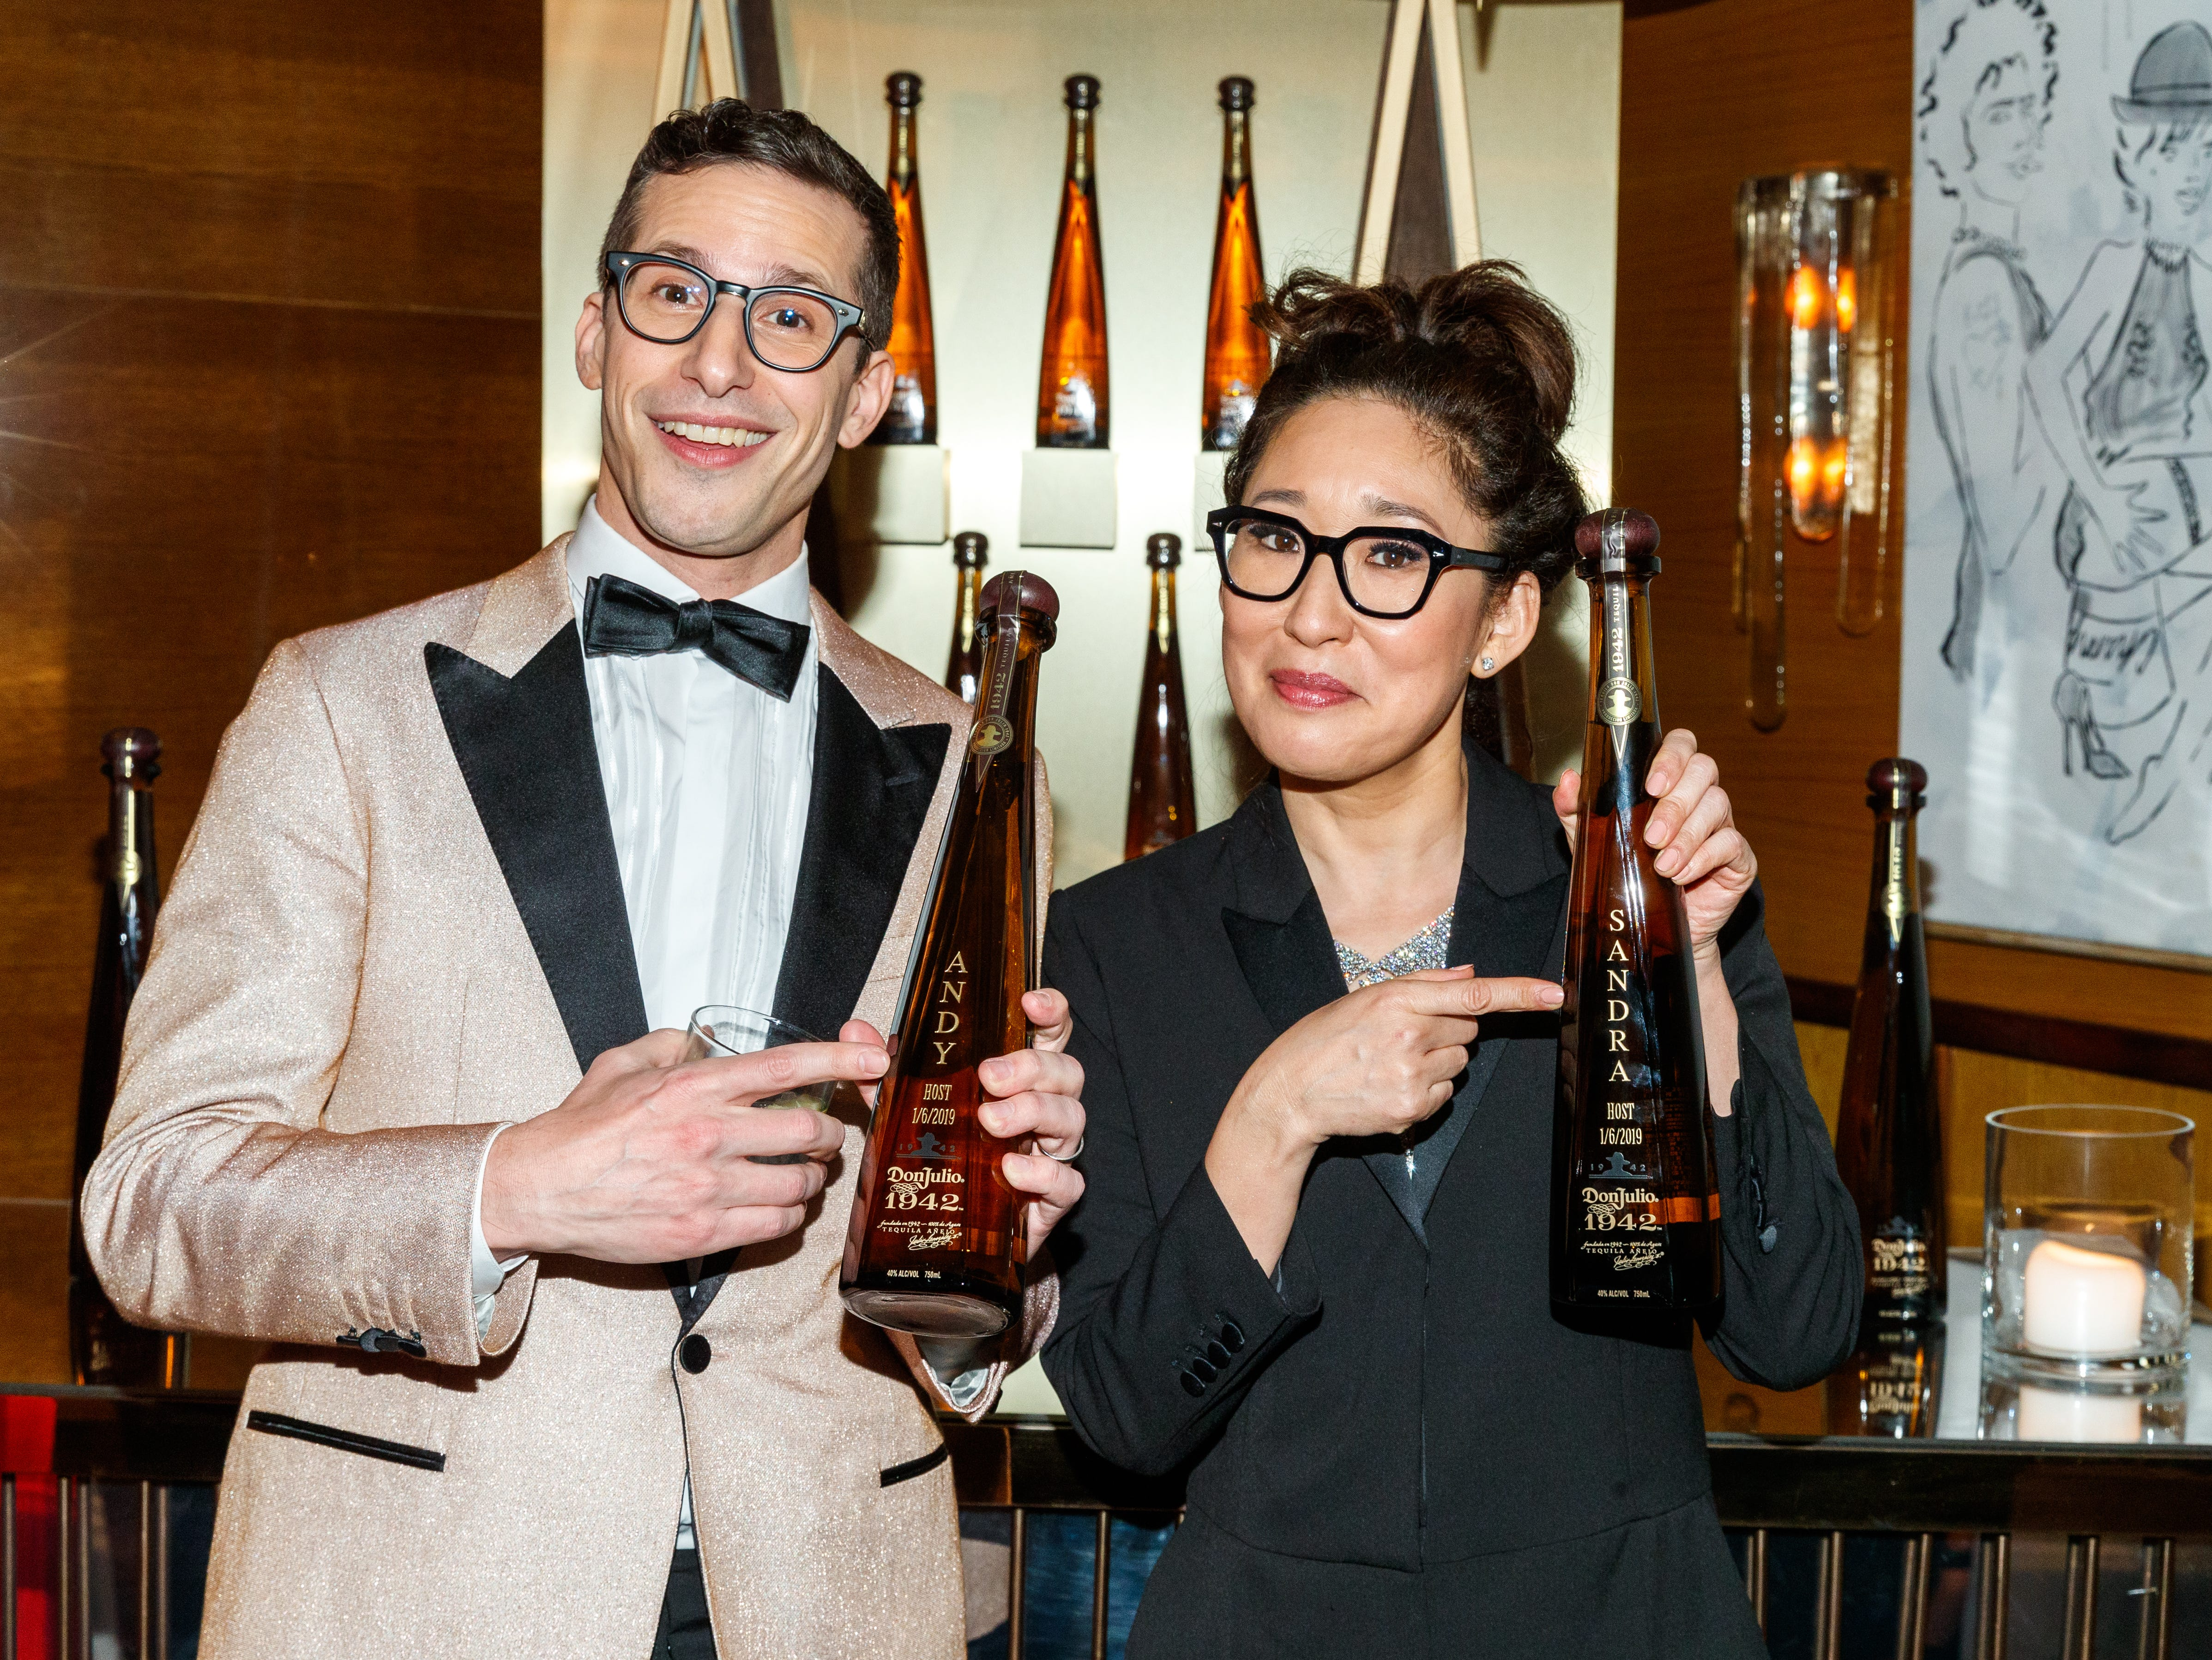 WEST HOLLYWOOD, CALIFORNIA - JANUARY 06:  Andy Samberg and Sandra Oh celebrate with Tequila Don Julio 1942 at their private Golden Globes After-Party on Sunday, January 6 2019 in West Hollywood, California. (Photo by Rich Polk/Getty Images for Tequila Don Julio 1942) ORG XMIT: 775277979 ORIG FILE ID: 1090774610